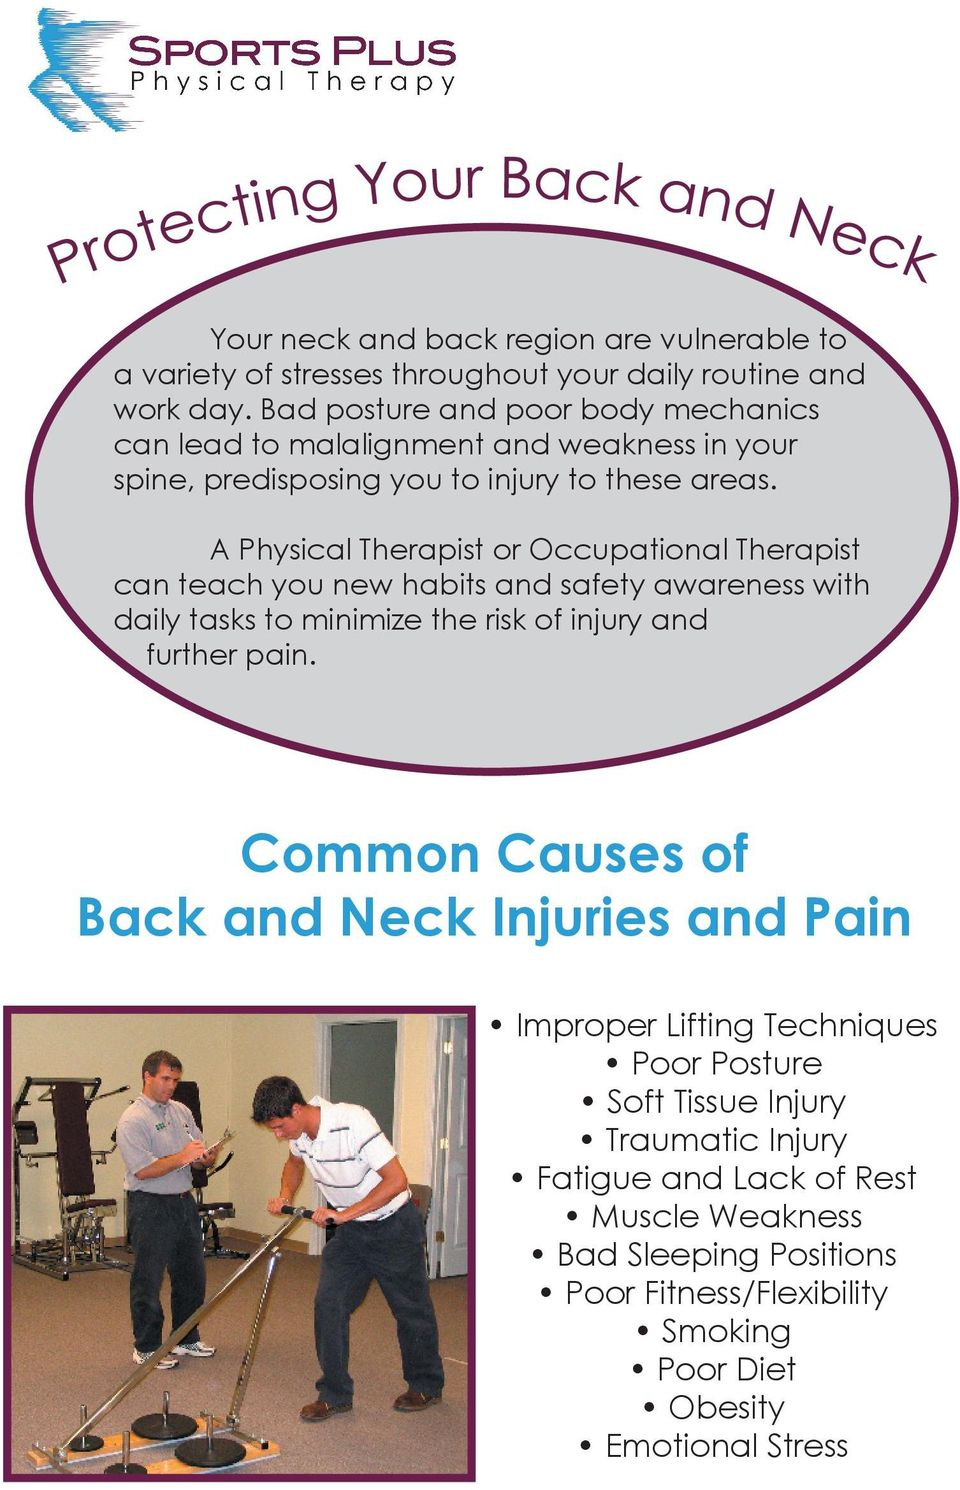 A Physical Therapist or Occupational Therapist can teach you new habits and safety awareness with daily tasks to minimize the risk of injury and further pain.